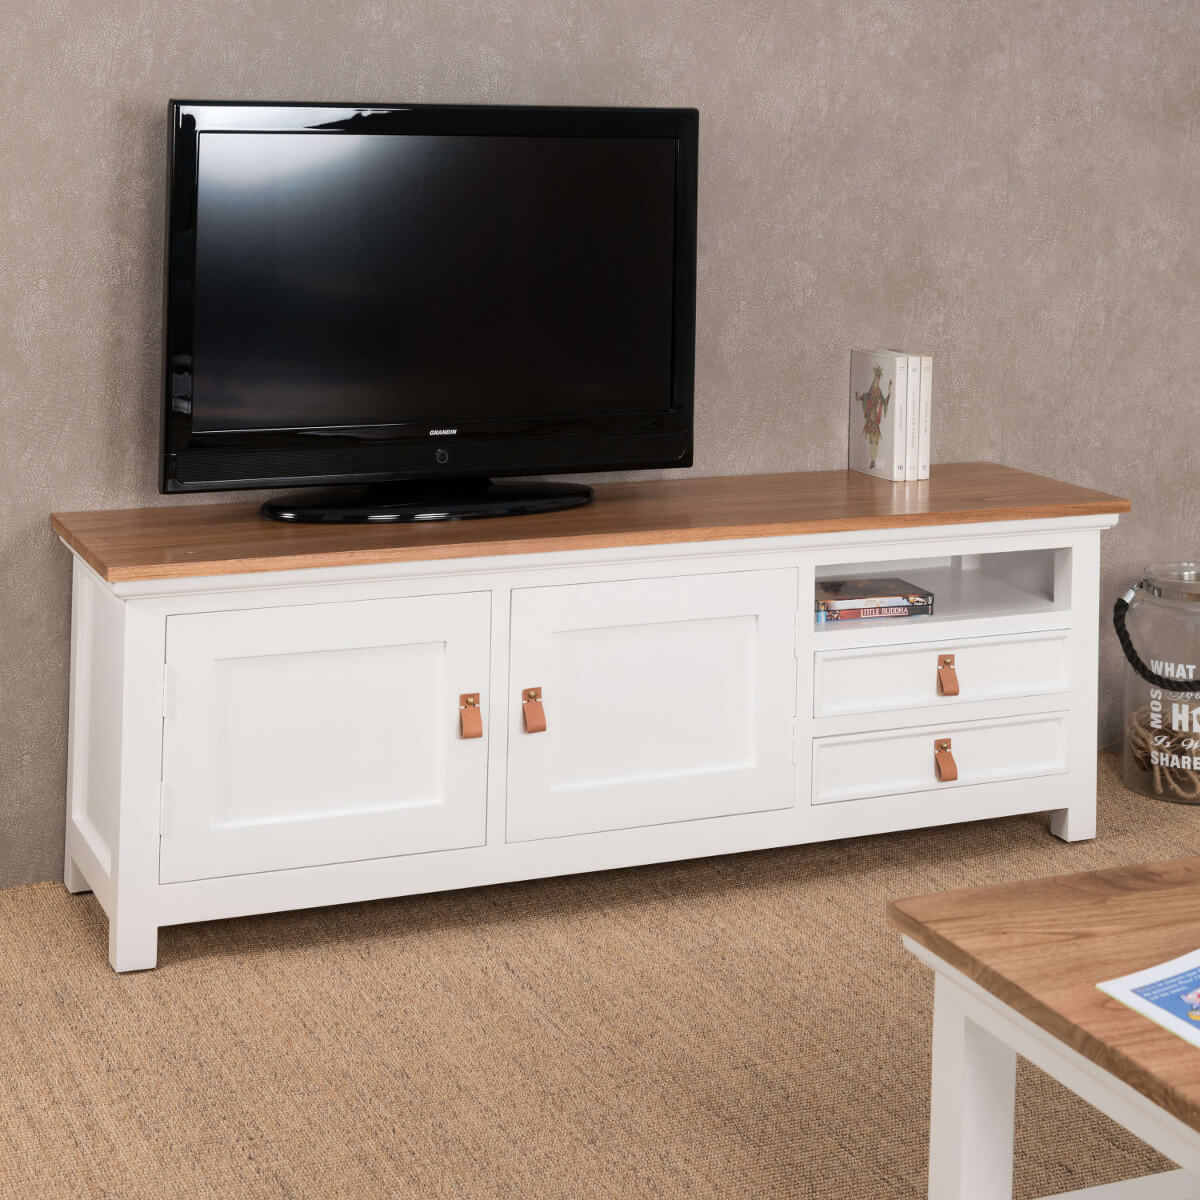 Meuble tv blanc meuble en teck bois massif rectangle for Meuble tv console